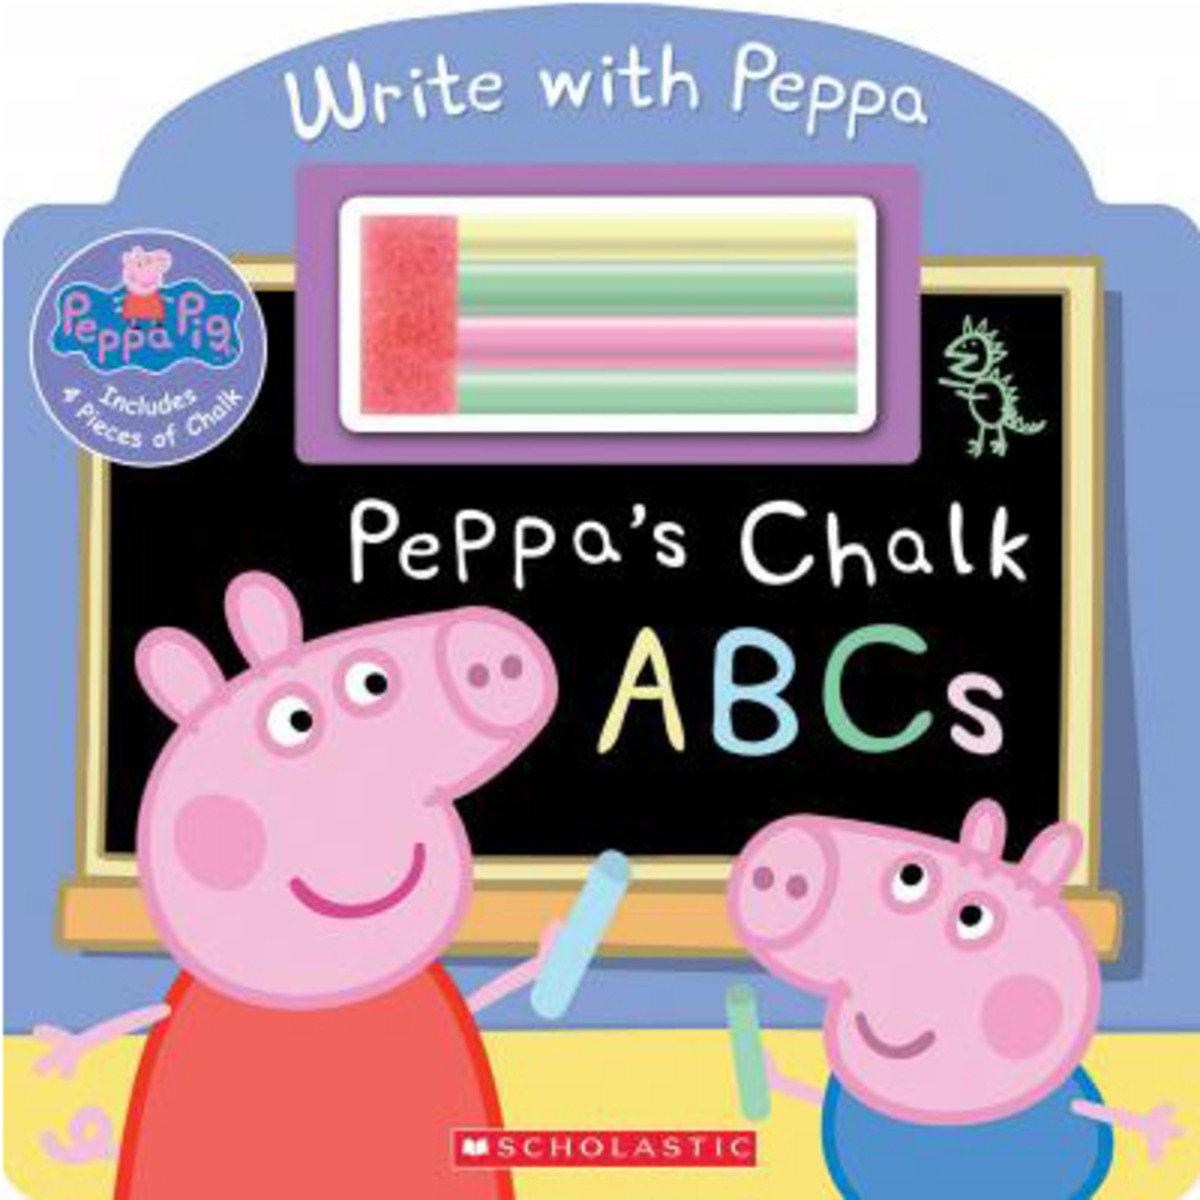 Peppa's Chalk ABCs